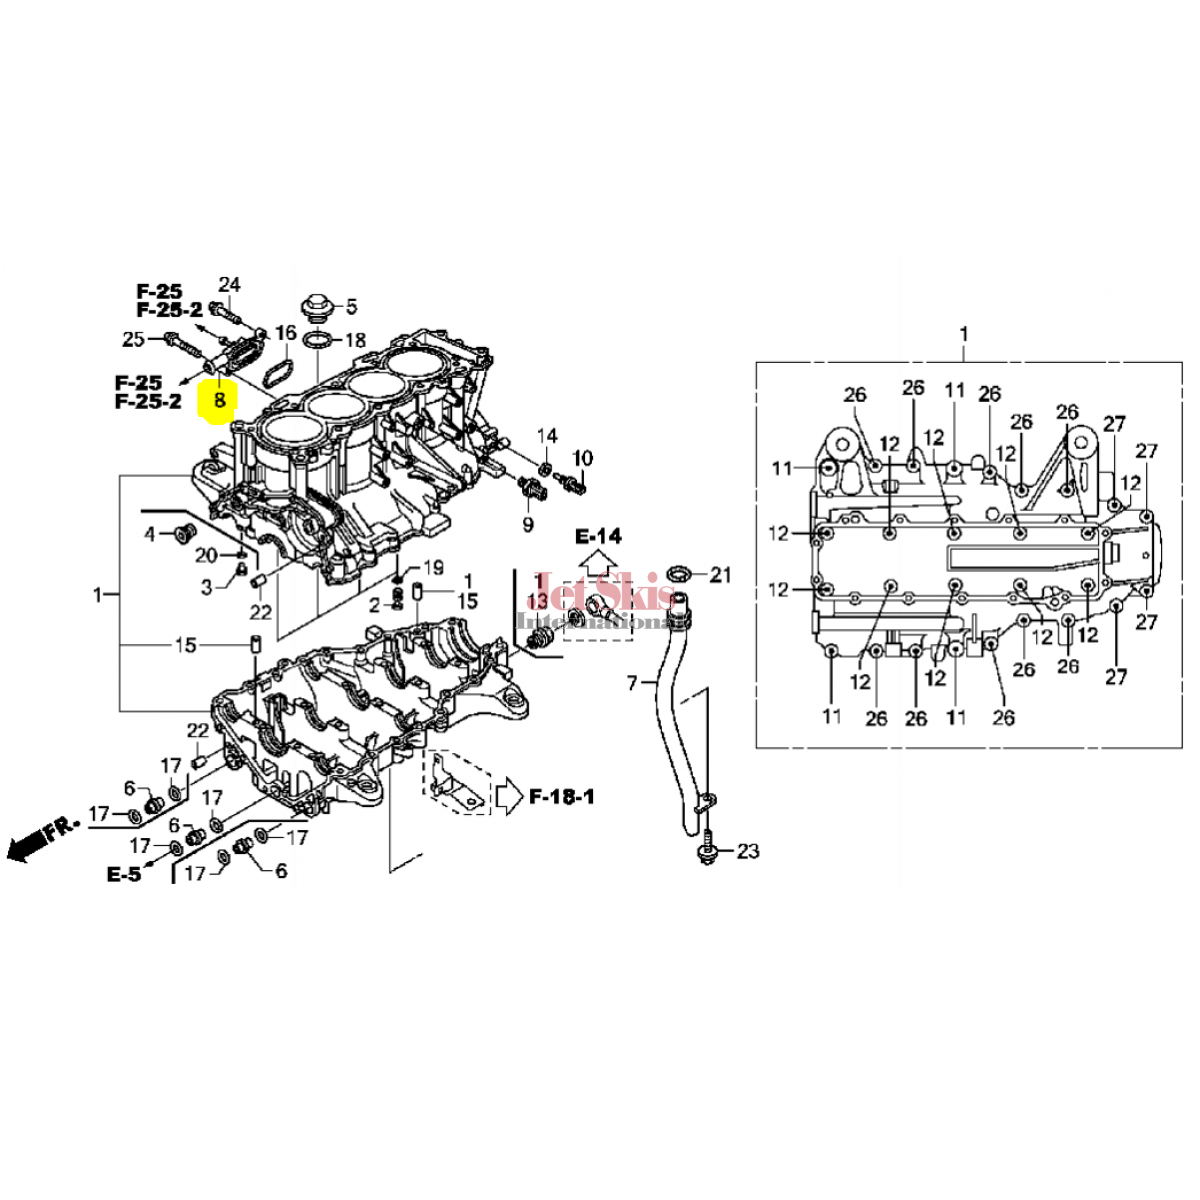 1995 Sea Doo Vts Wiring Diagram - Schematics Online  Sea Doo Gtx Wiring Diagram on